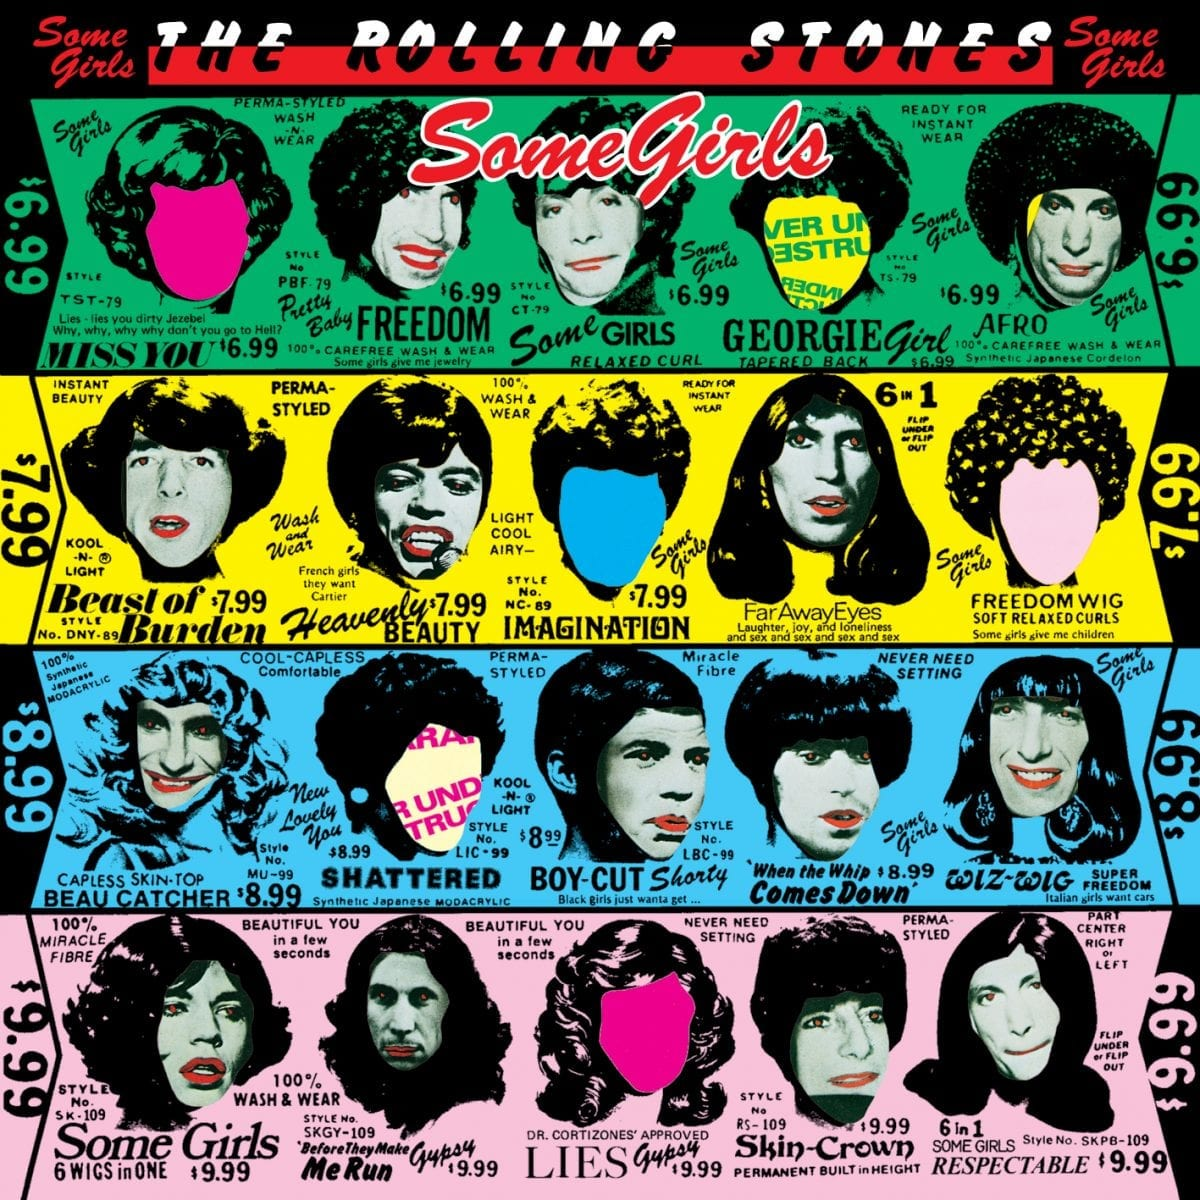 Rolling Stones Some Girls cover